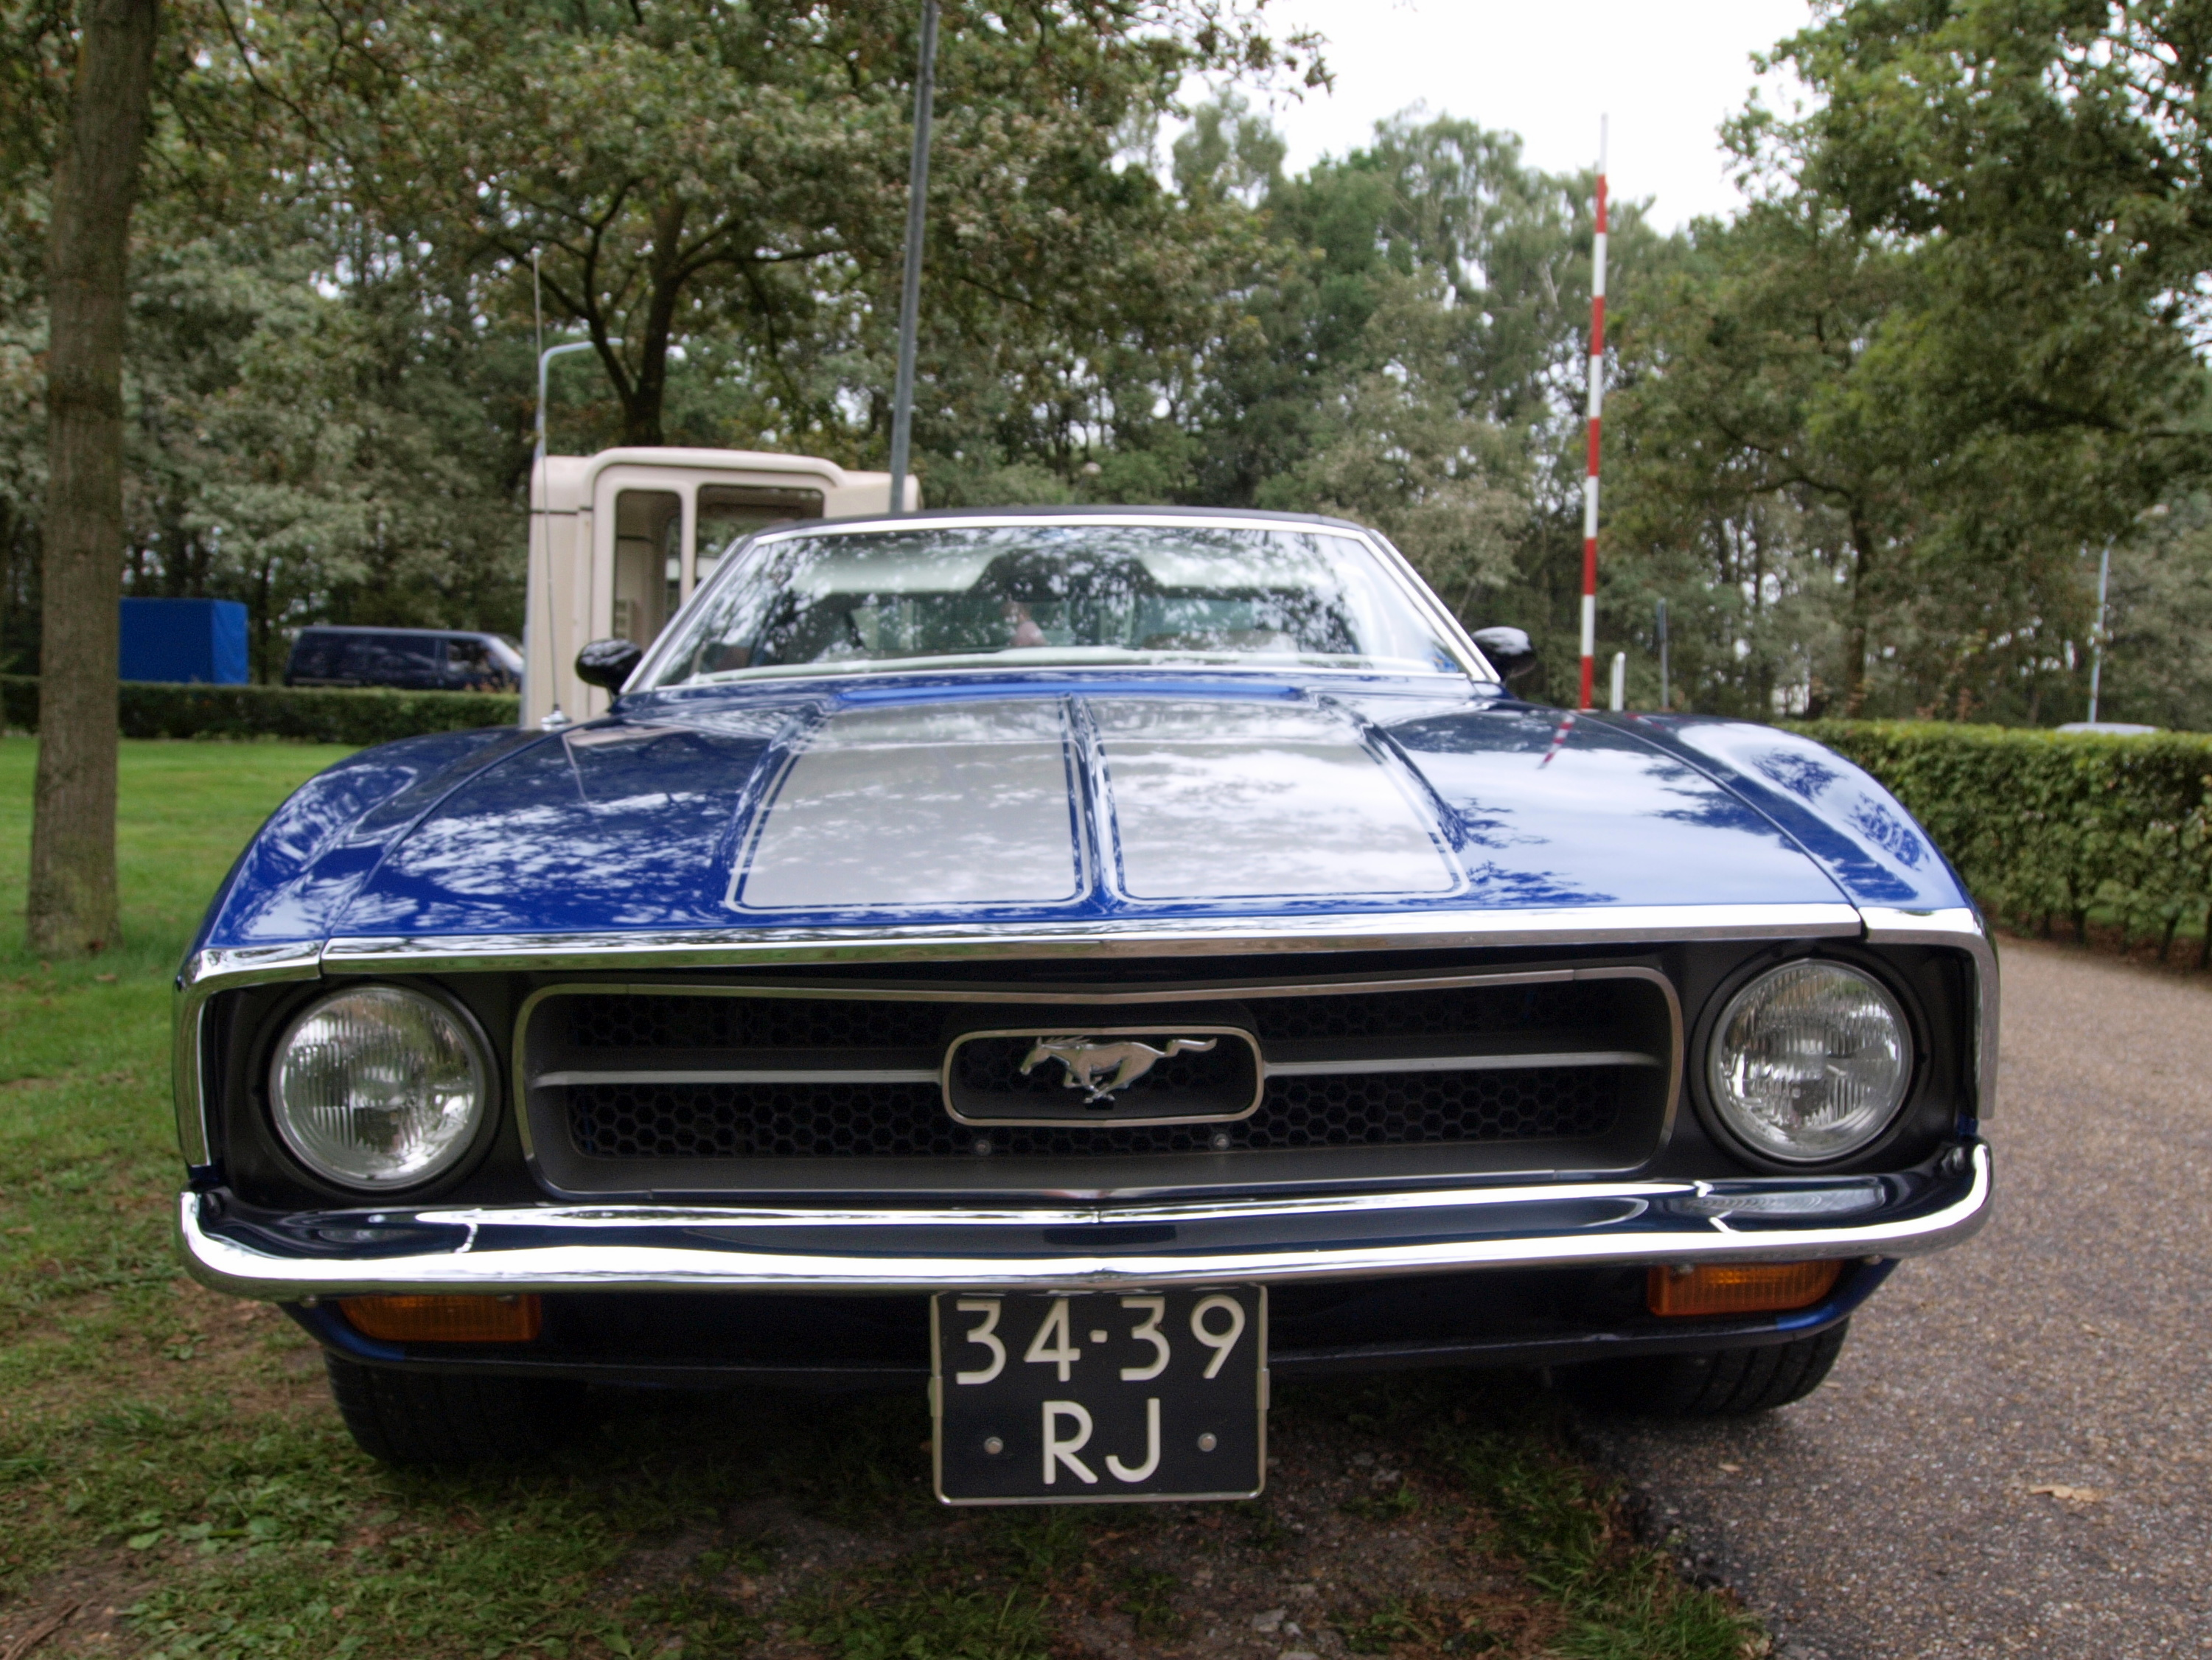 File 34 39 rj ford mustang 1970 at the autotron oldtimer meeting